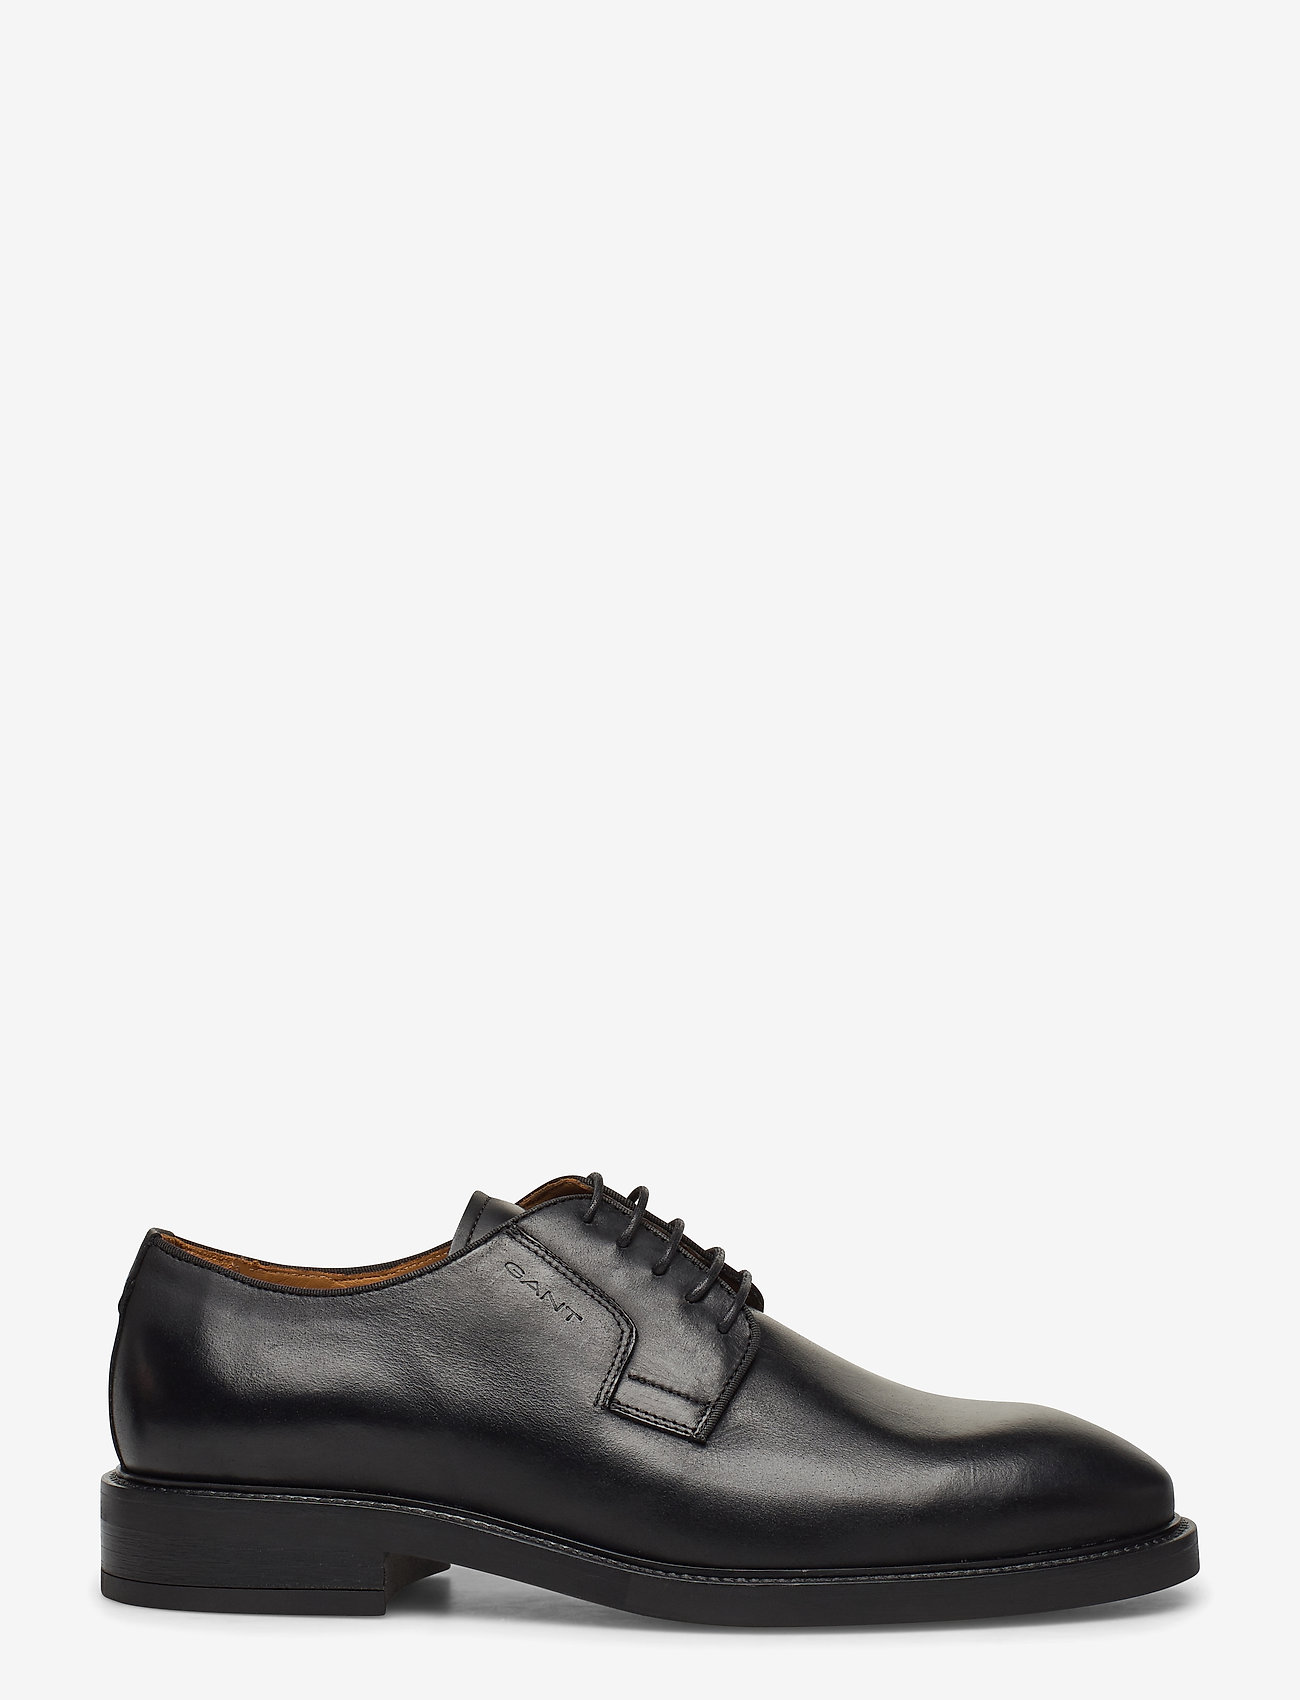 GANT - Flairville Low laceshoes - laced shoes - black - 1